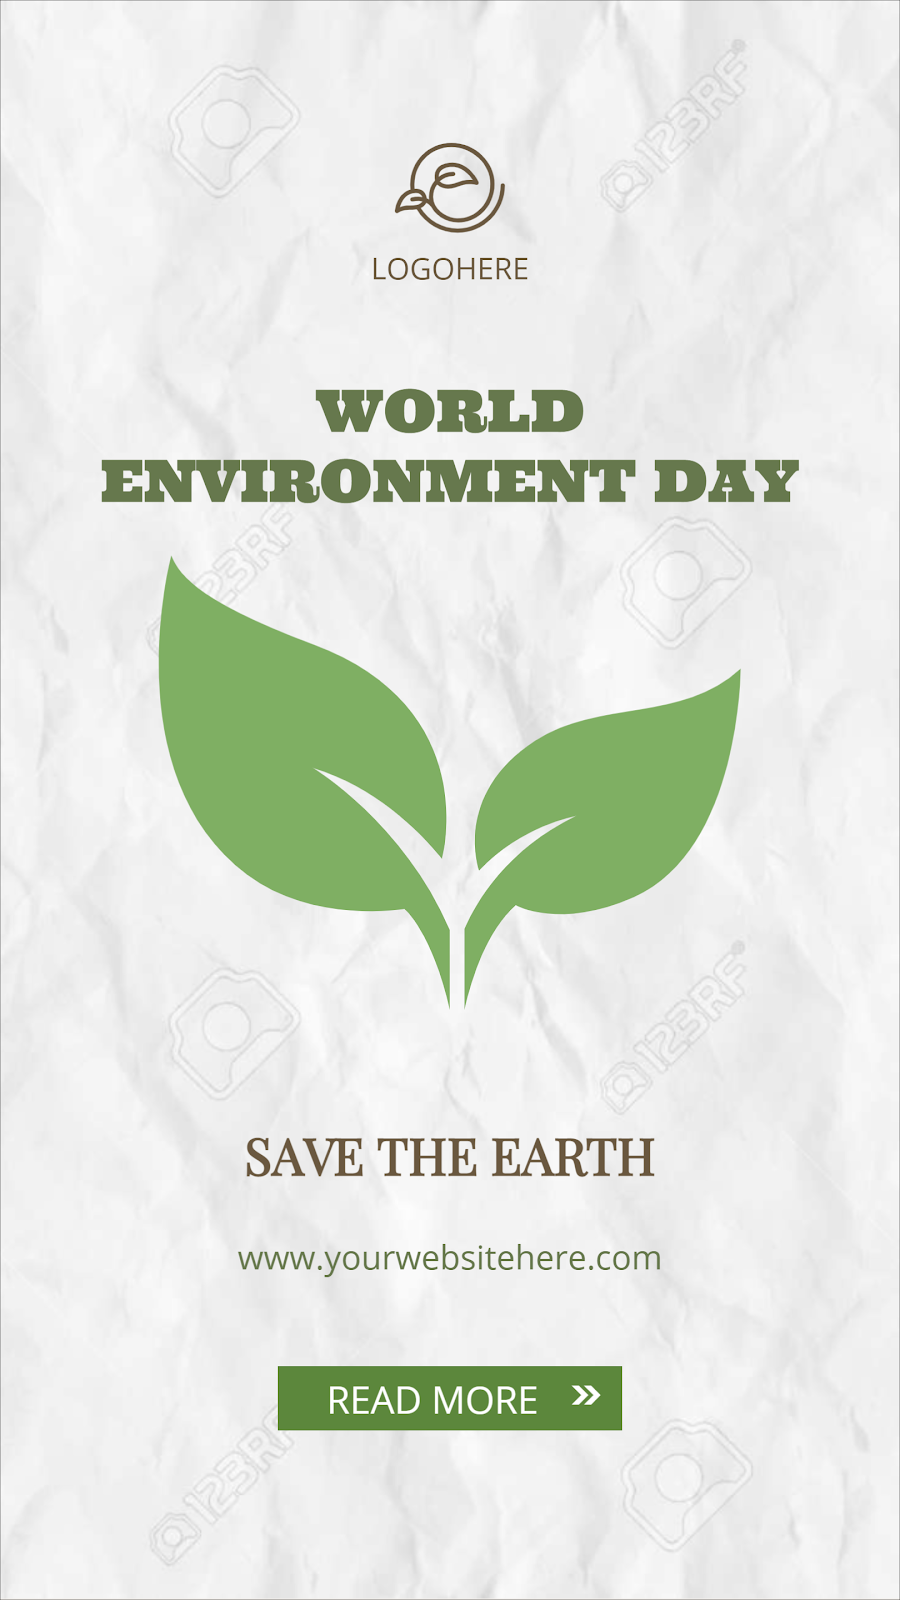 Green marketing template design for World Environment Day by Designmaker.